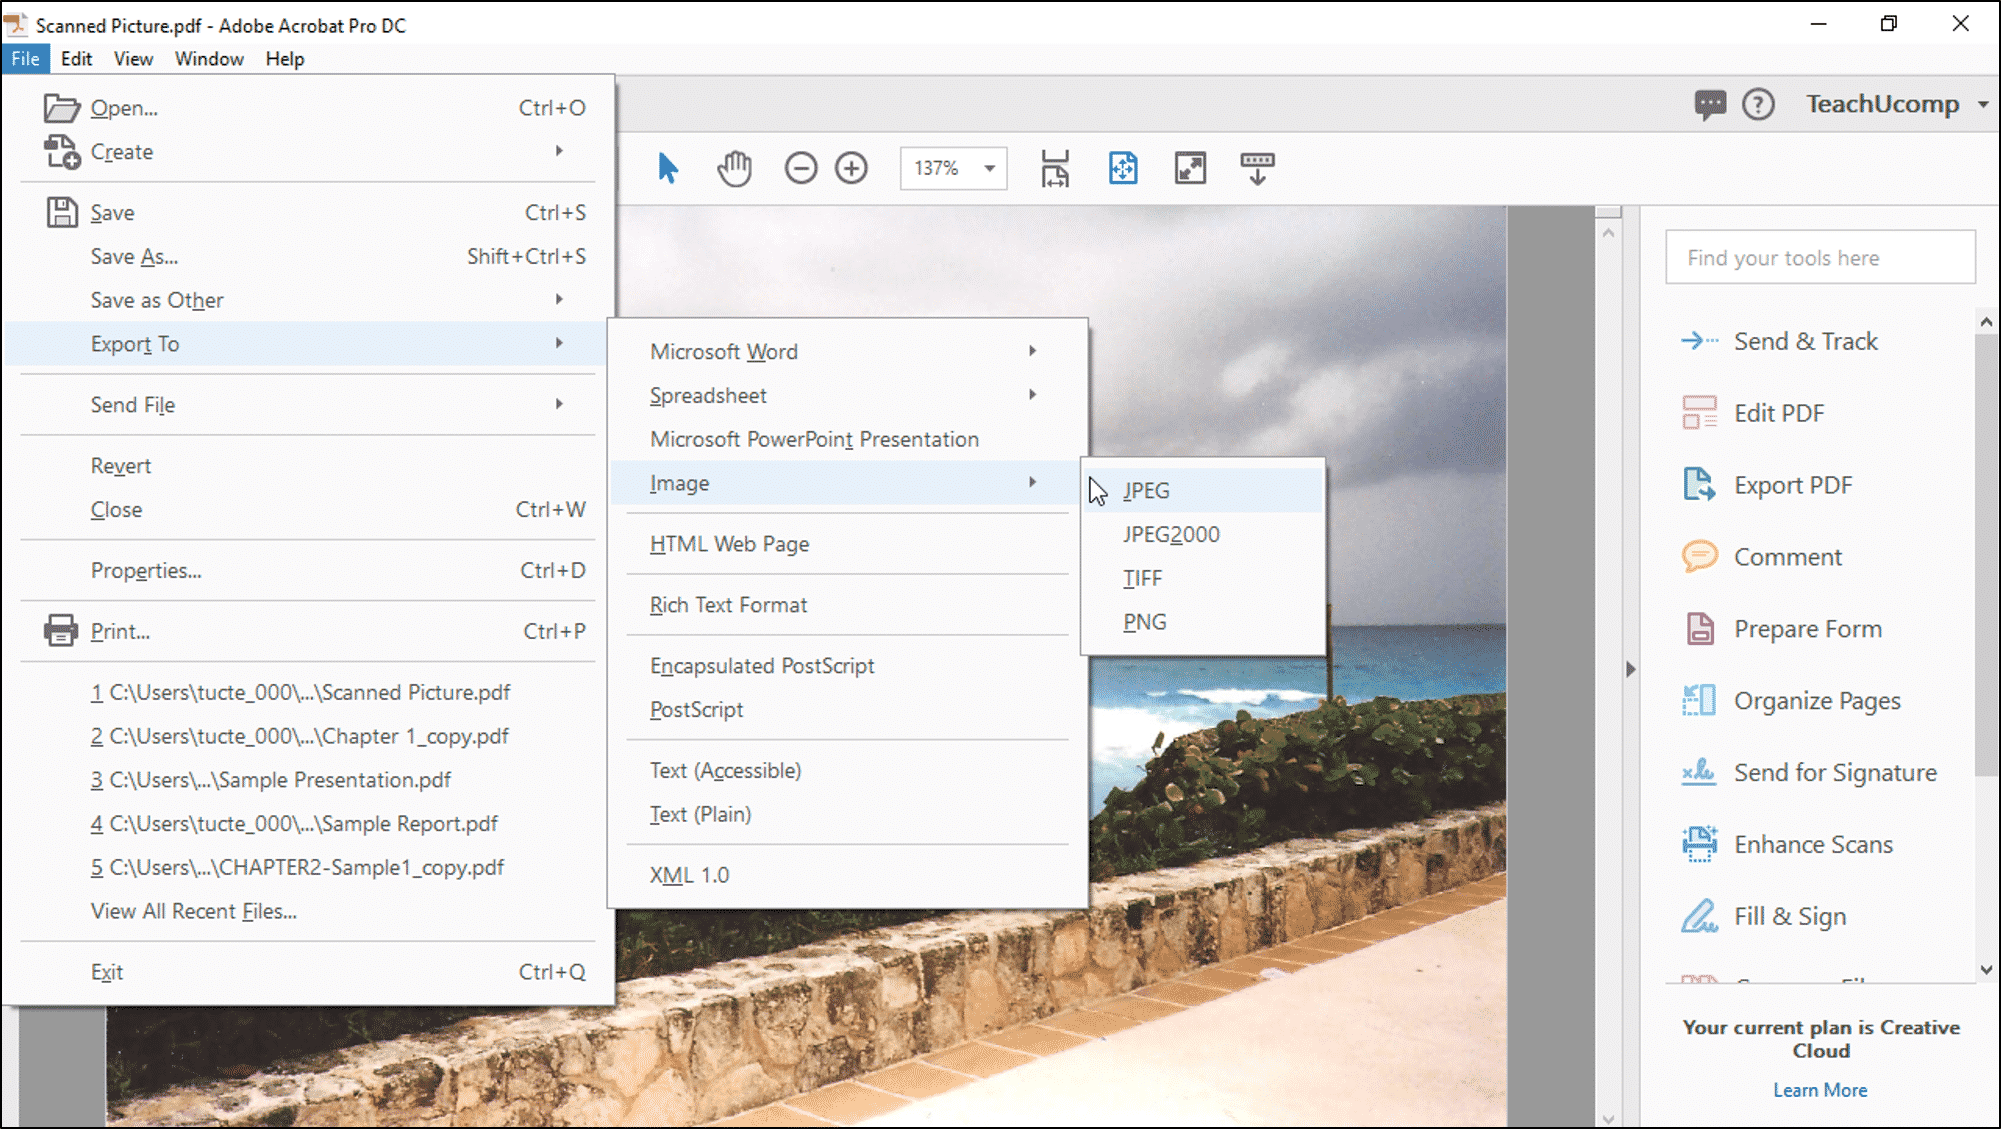 Save a PDF as an Image in Acrobat- Instructions - TeachUcomp, Inc